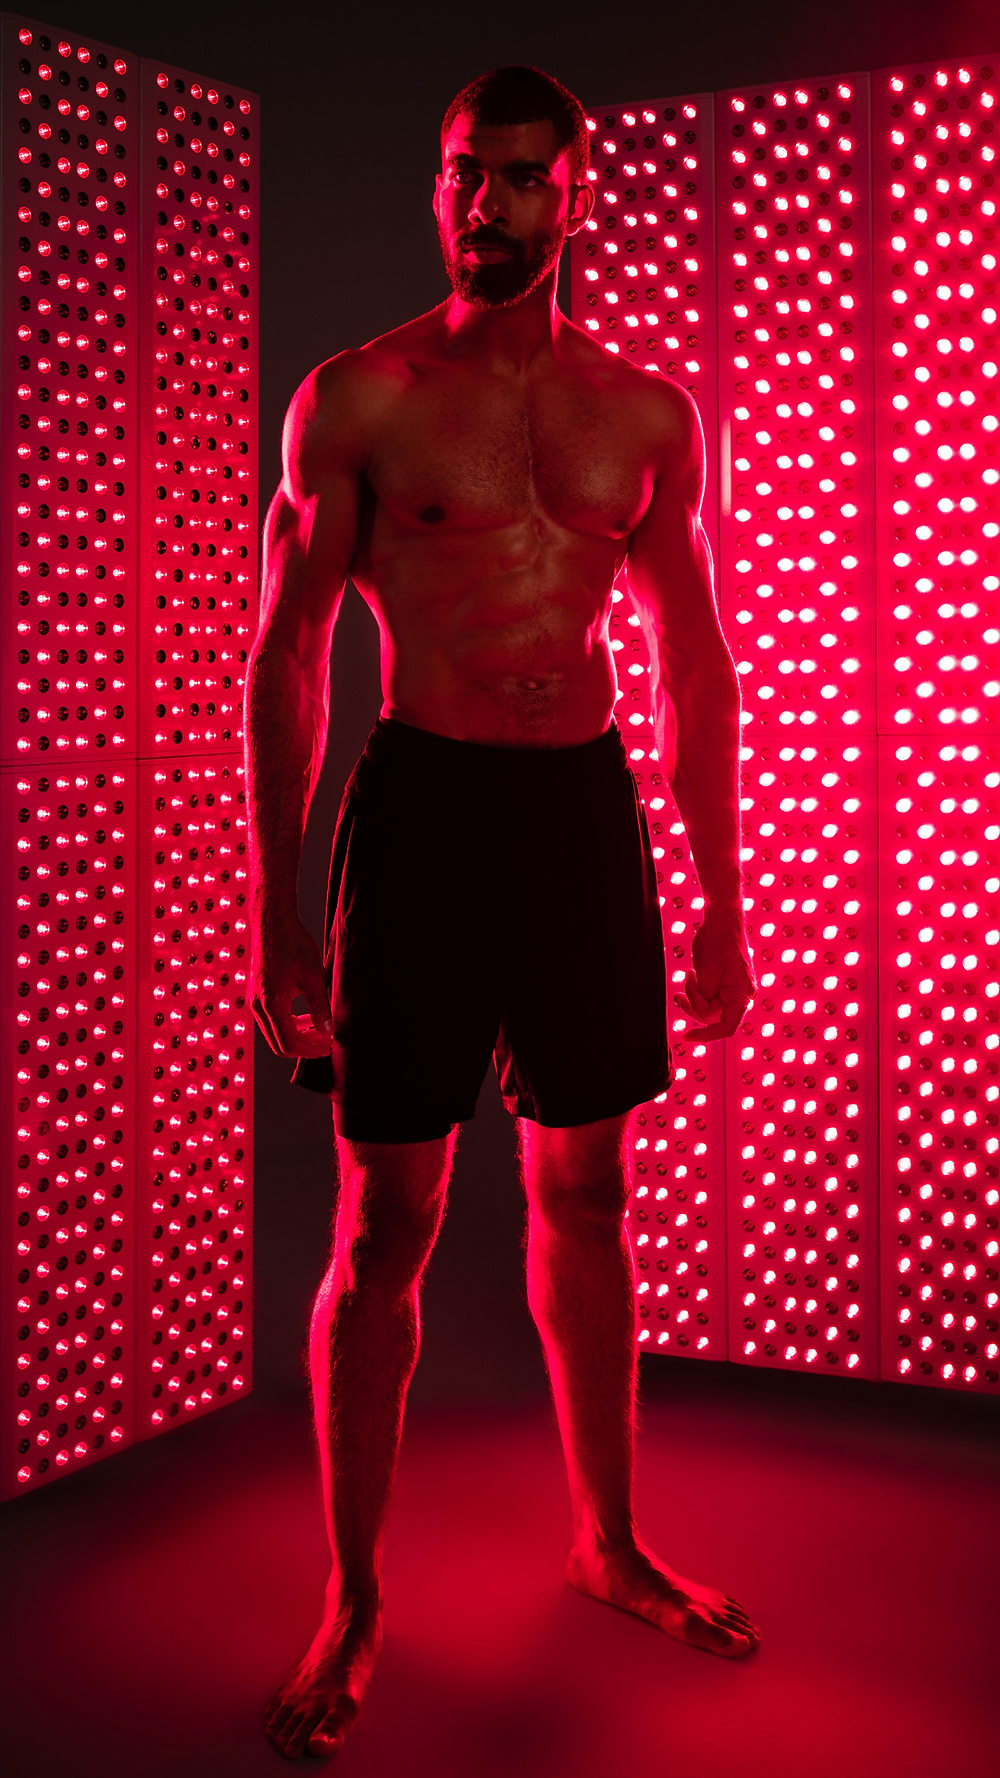 photo of somebody standing between two panels to get red light therapy